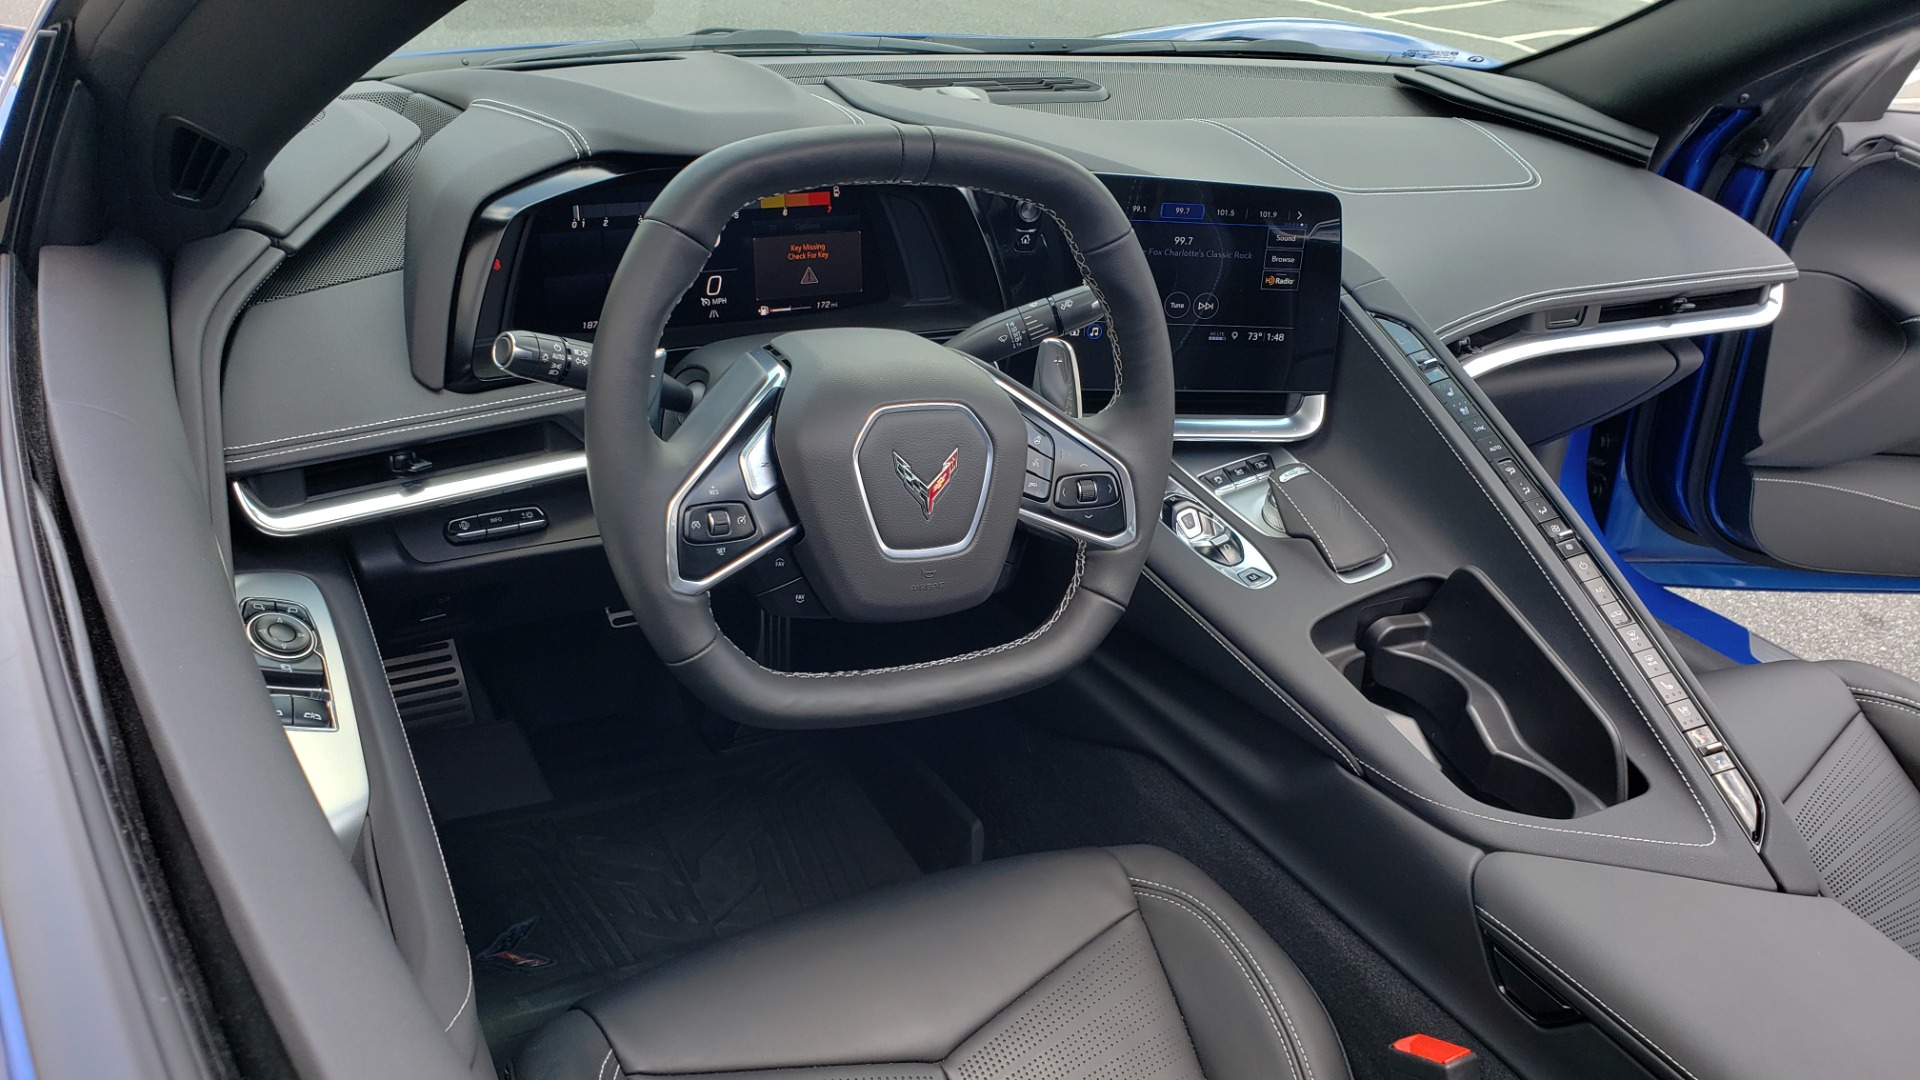 Used 2020 Chevrolet CORVETTE C8 STINGRAY COUPE 2LT / PERF & Z51 PKG / NAV / BOSE / 8-SPD AUTO / REARVIEW for sale Sold at Formula Imports in Charlotte NC 28227 30